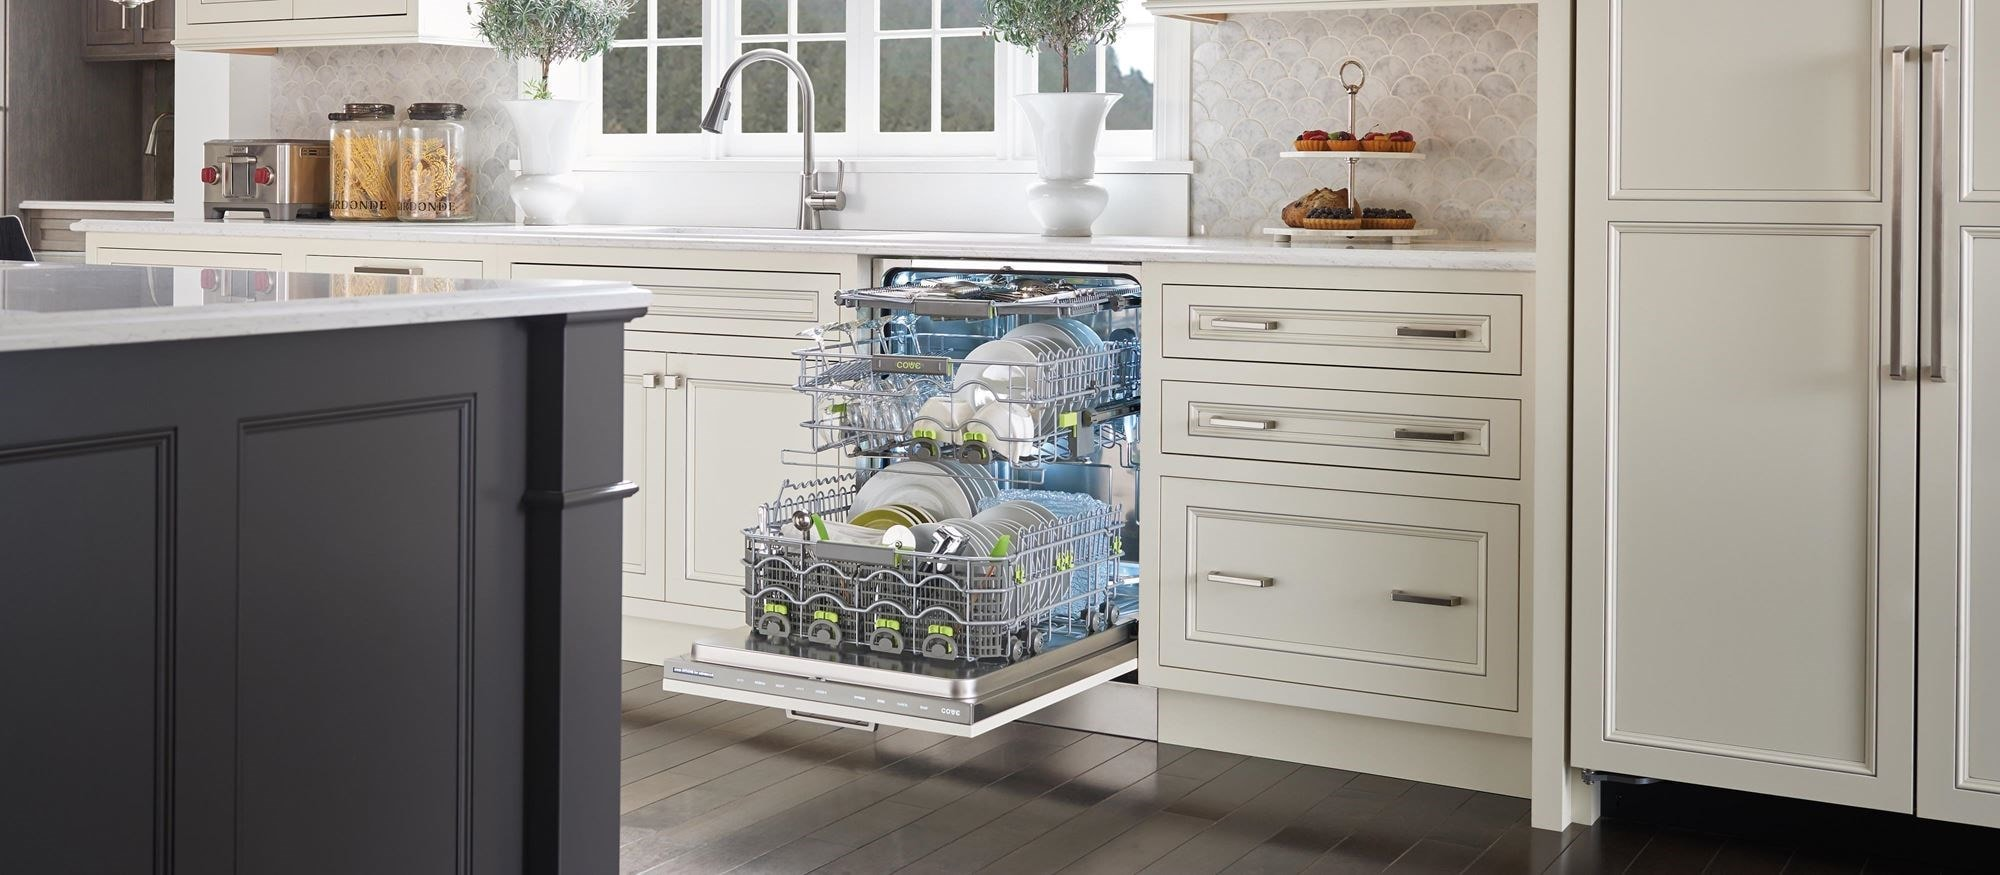 "Cove 24"" Dishwasher with Water Softener Panel Ready (DW2450WS)"